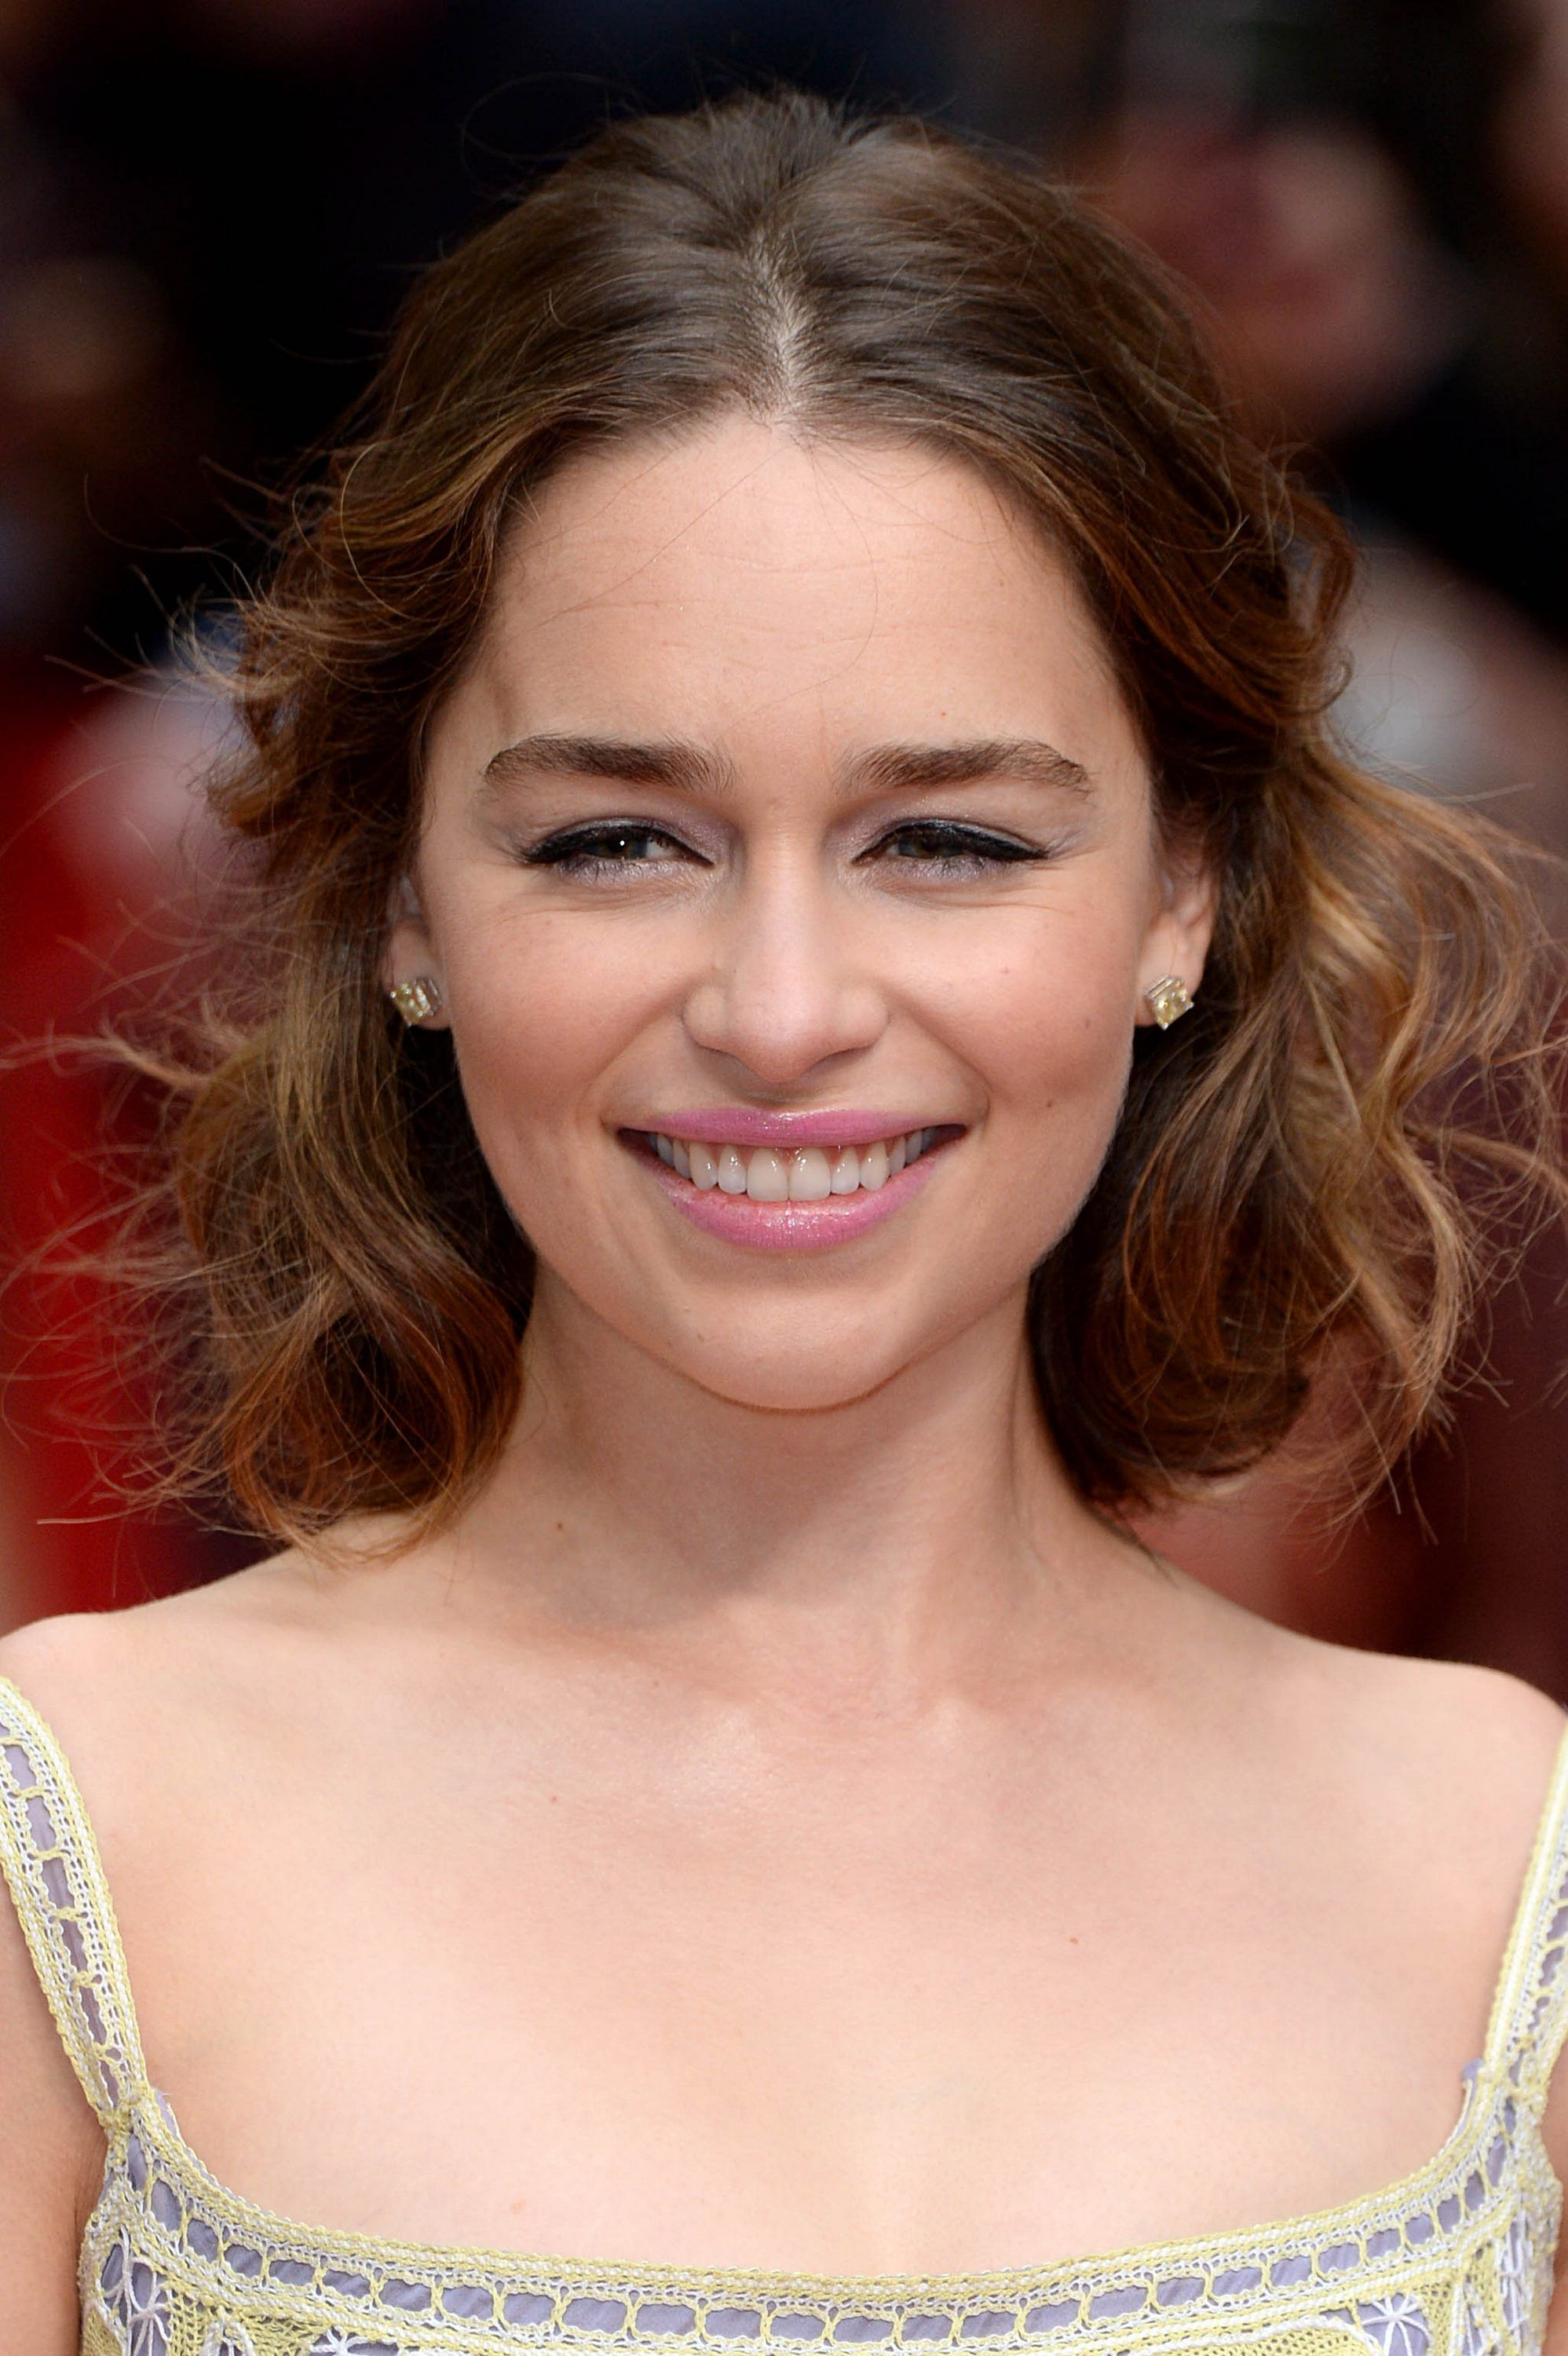 May 25: Me Before You Premiere in London - 0525 MBYLondonPremiere 0003 - Adoring Emilia Clarke - The Photo Gallery #emiliaclarke